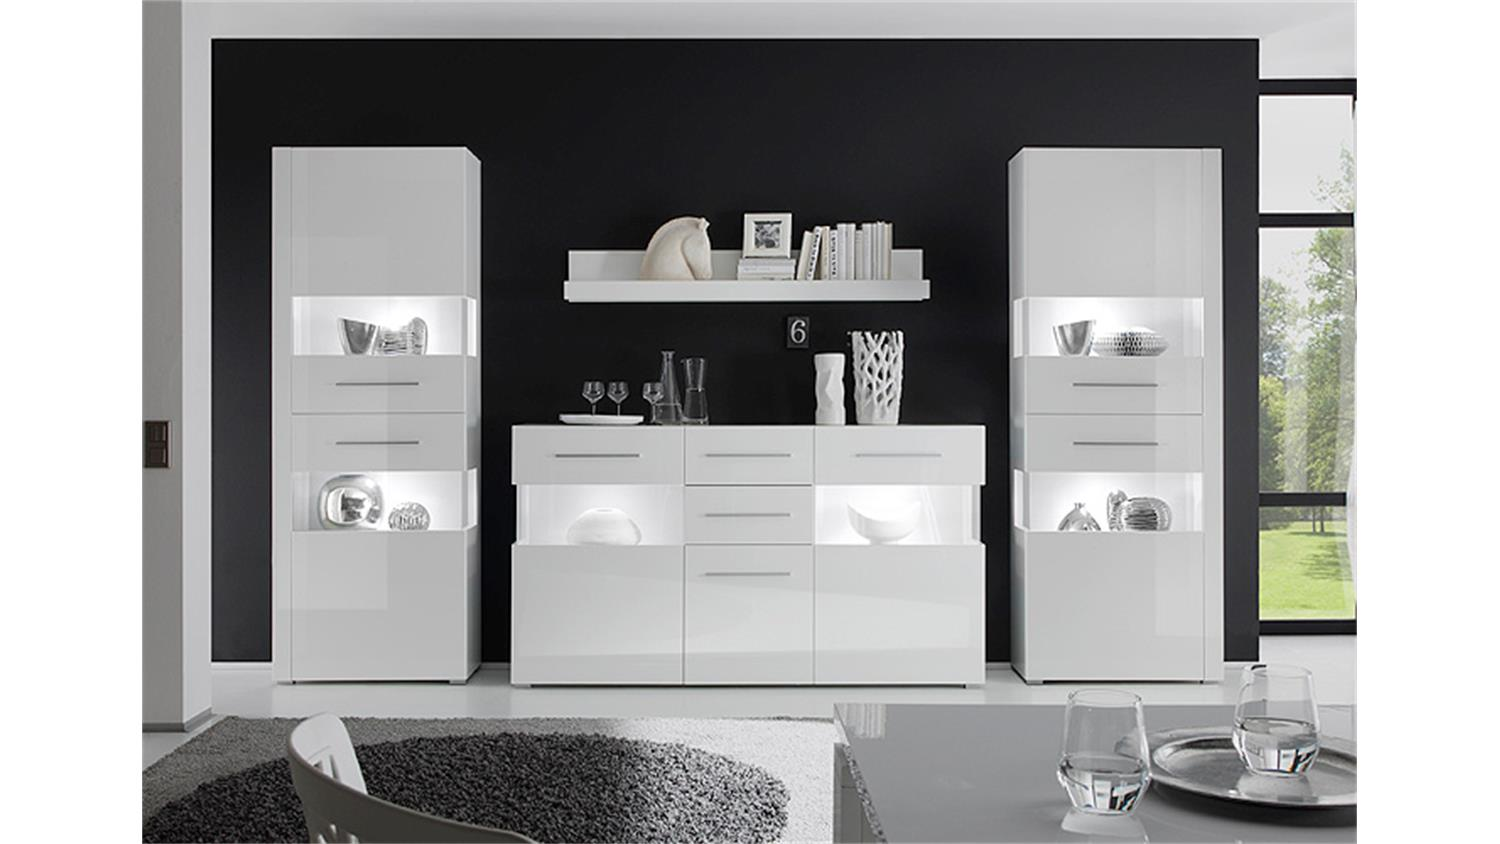 wohnwand 3 star mdf wei hochglanz tiefzieh. Black Bedroom Furniture Sets. Home Design Ideas